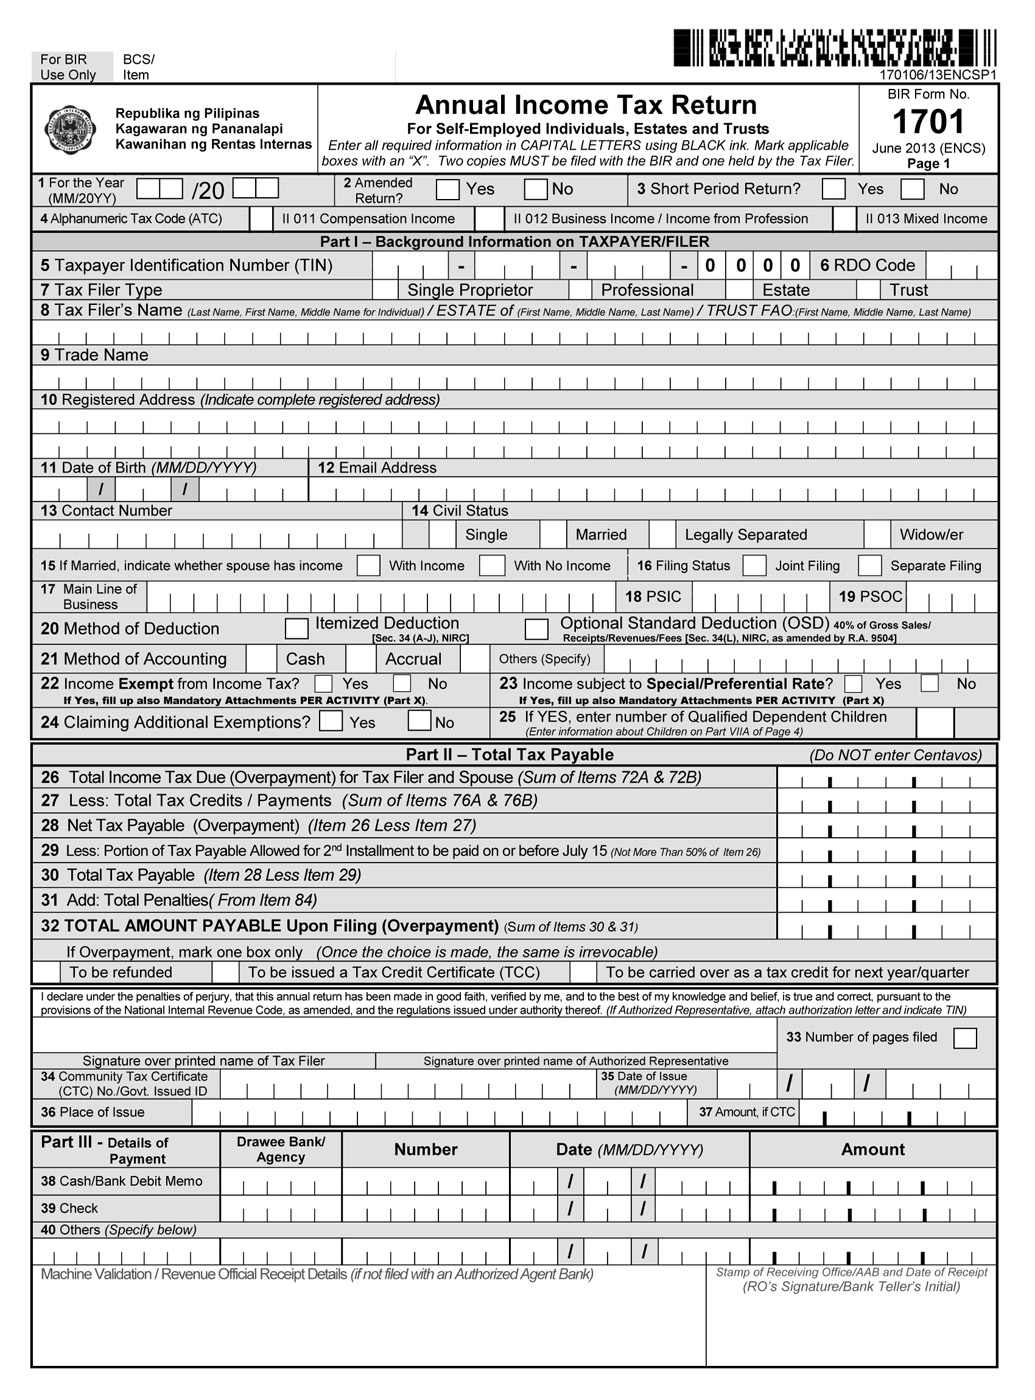 Income Tax Forms Income Tax Forms For Self Employed